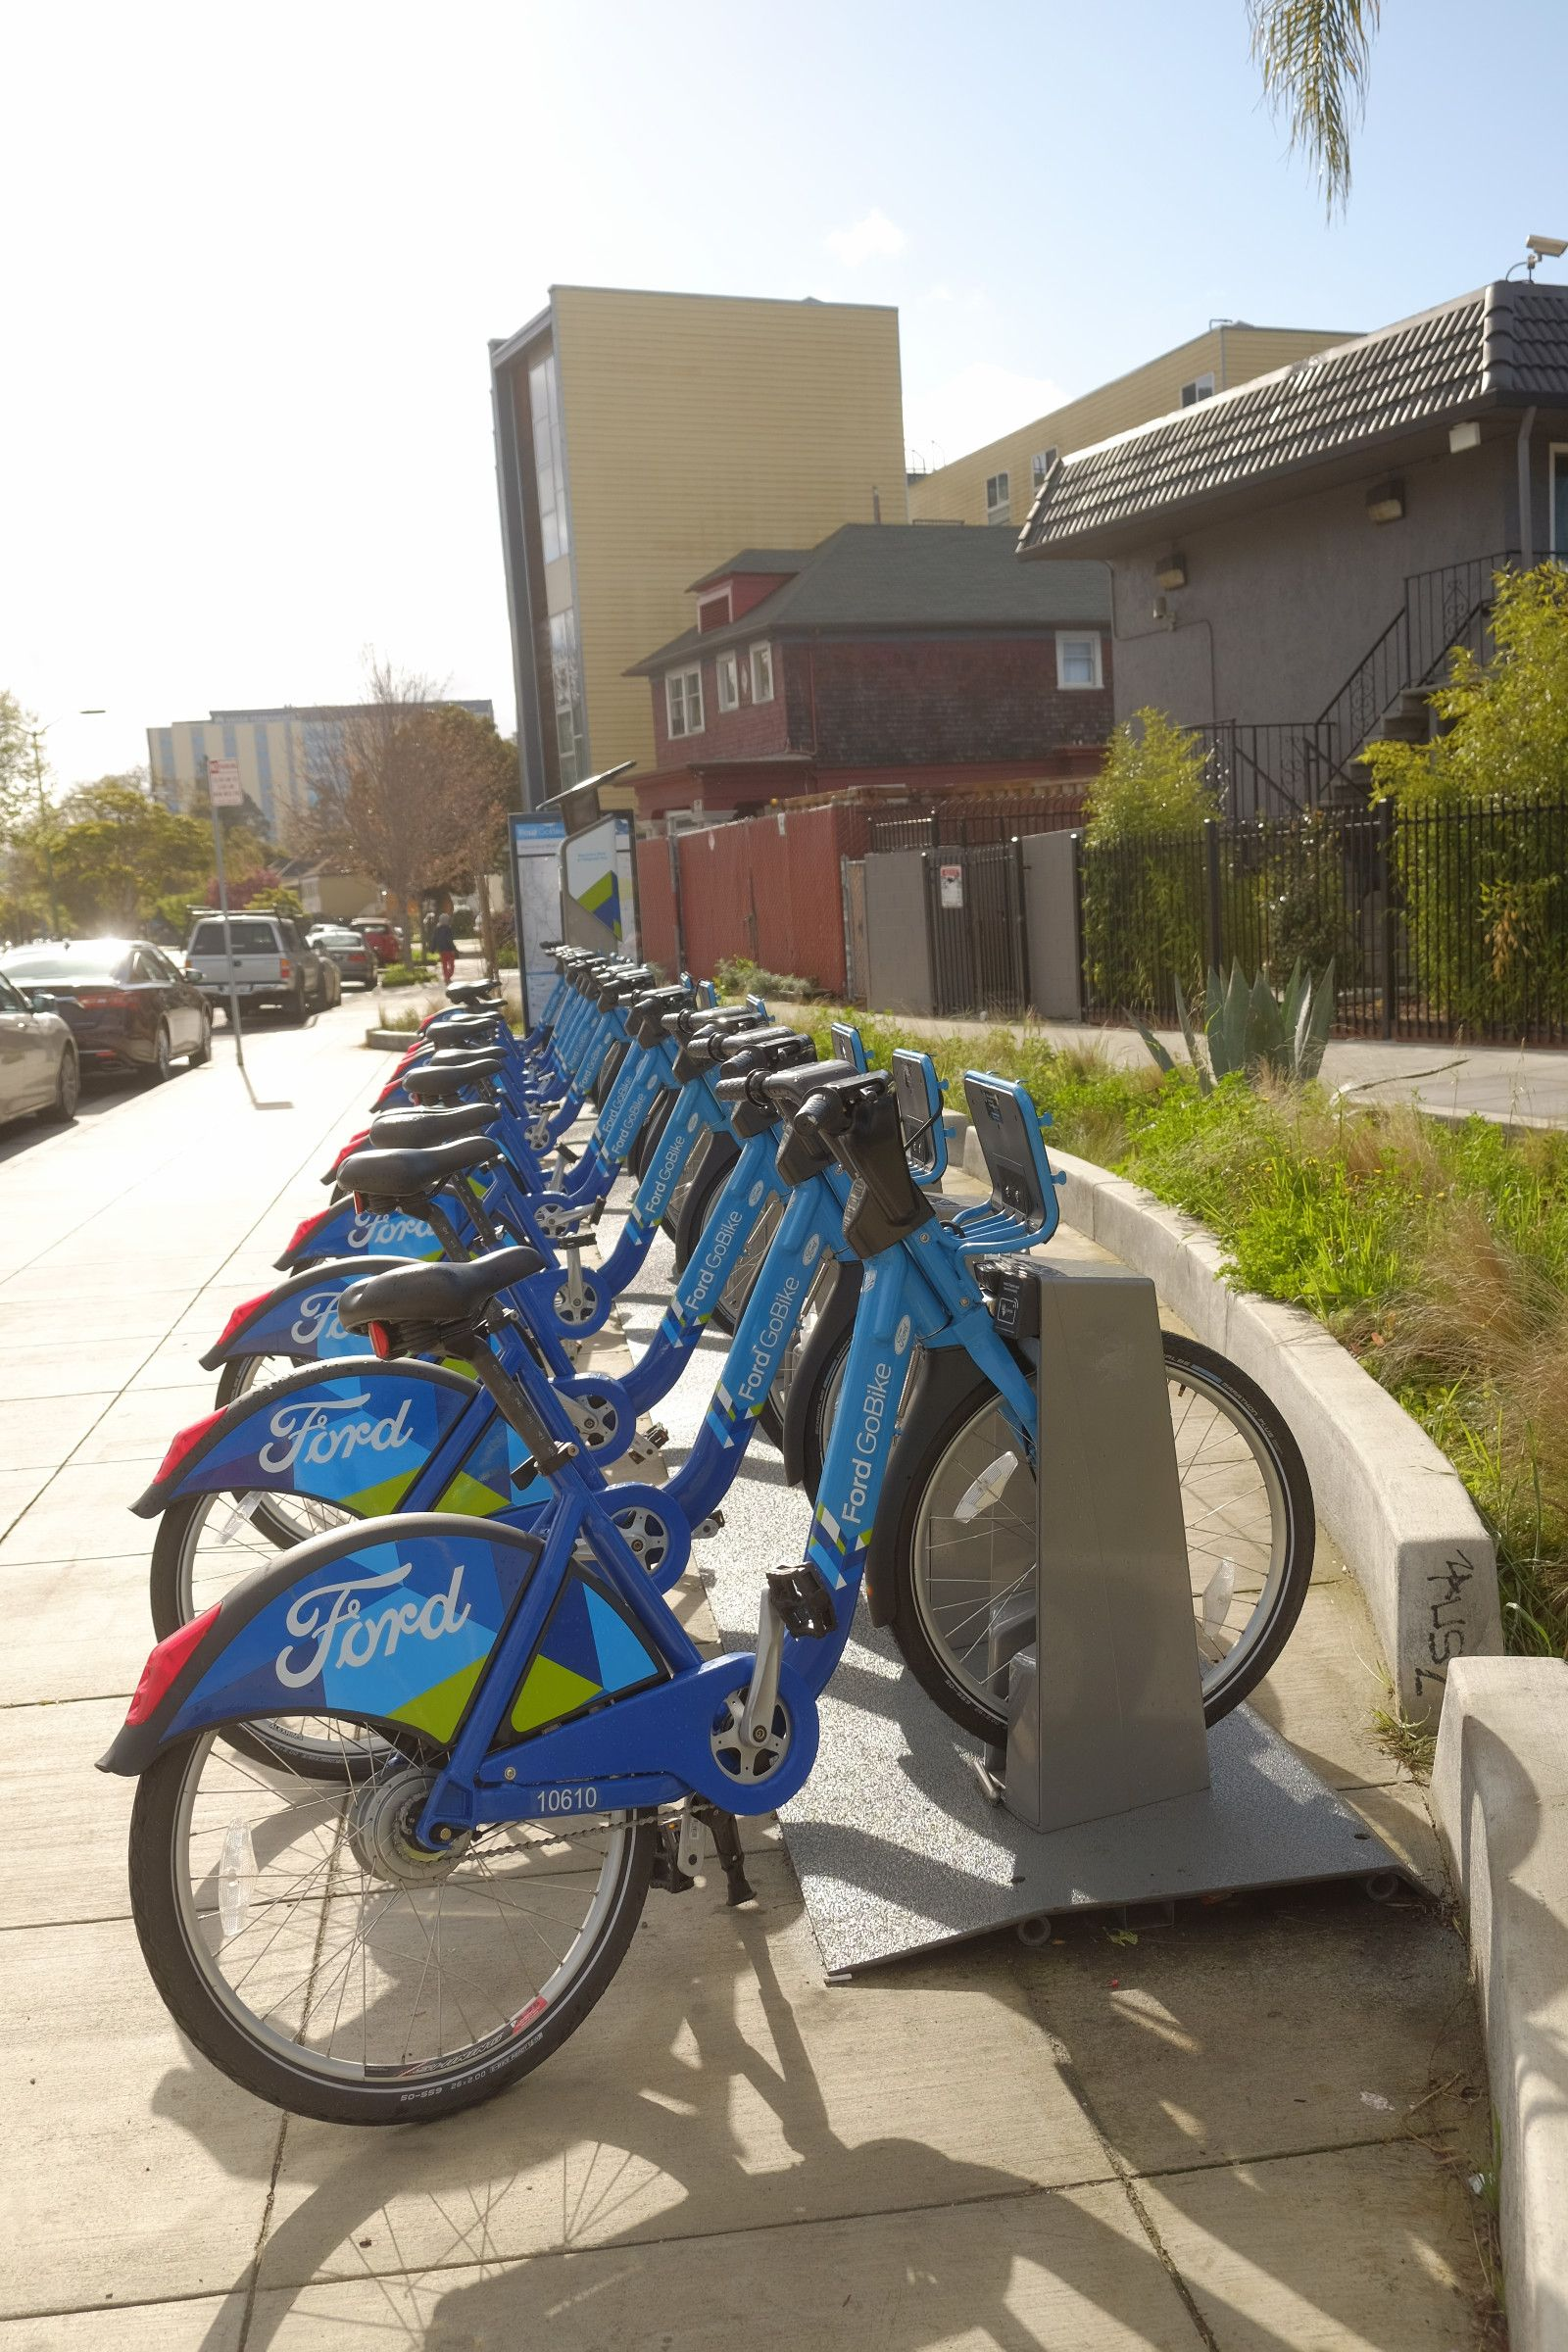 Bay Area Bike Share Costing 2 3 Per Trip Or 10 Per Day Up To 30 Minutes For Free For Upright City Or Electric Bike With Basket City Bike Oakland Bike Trips